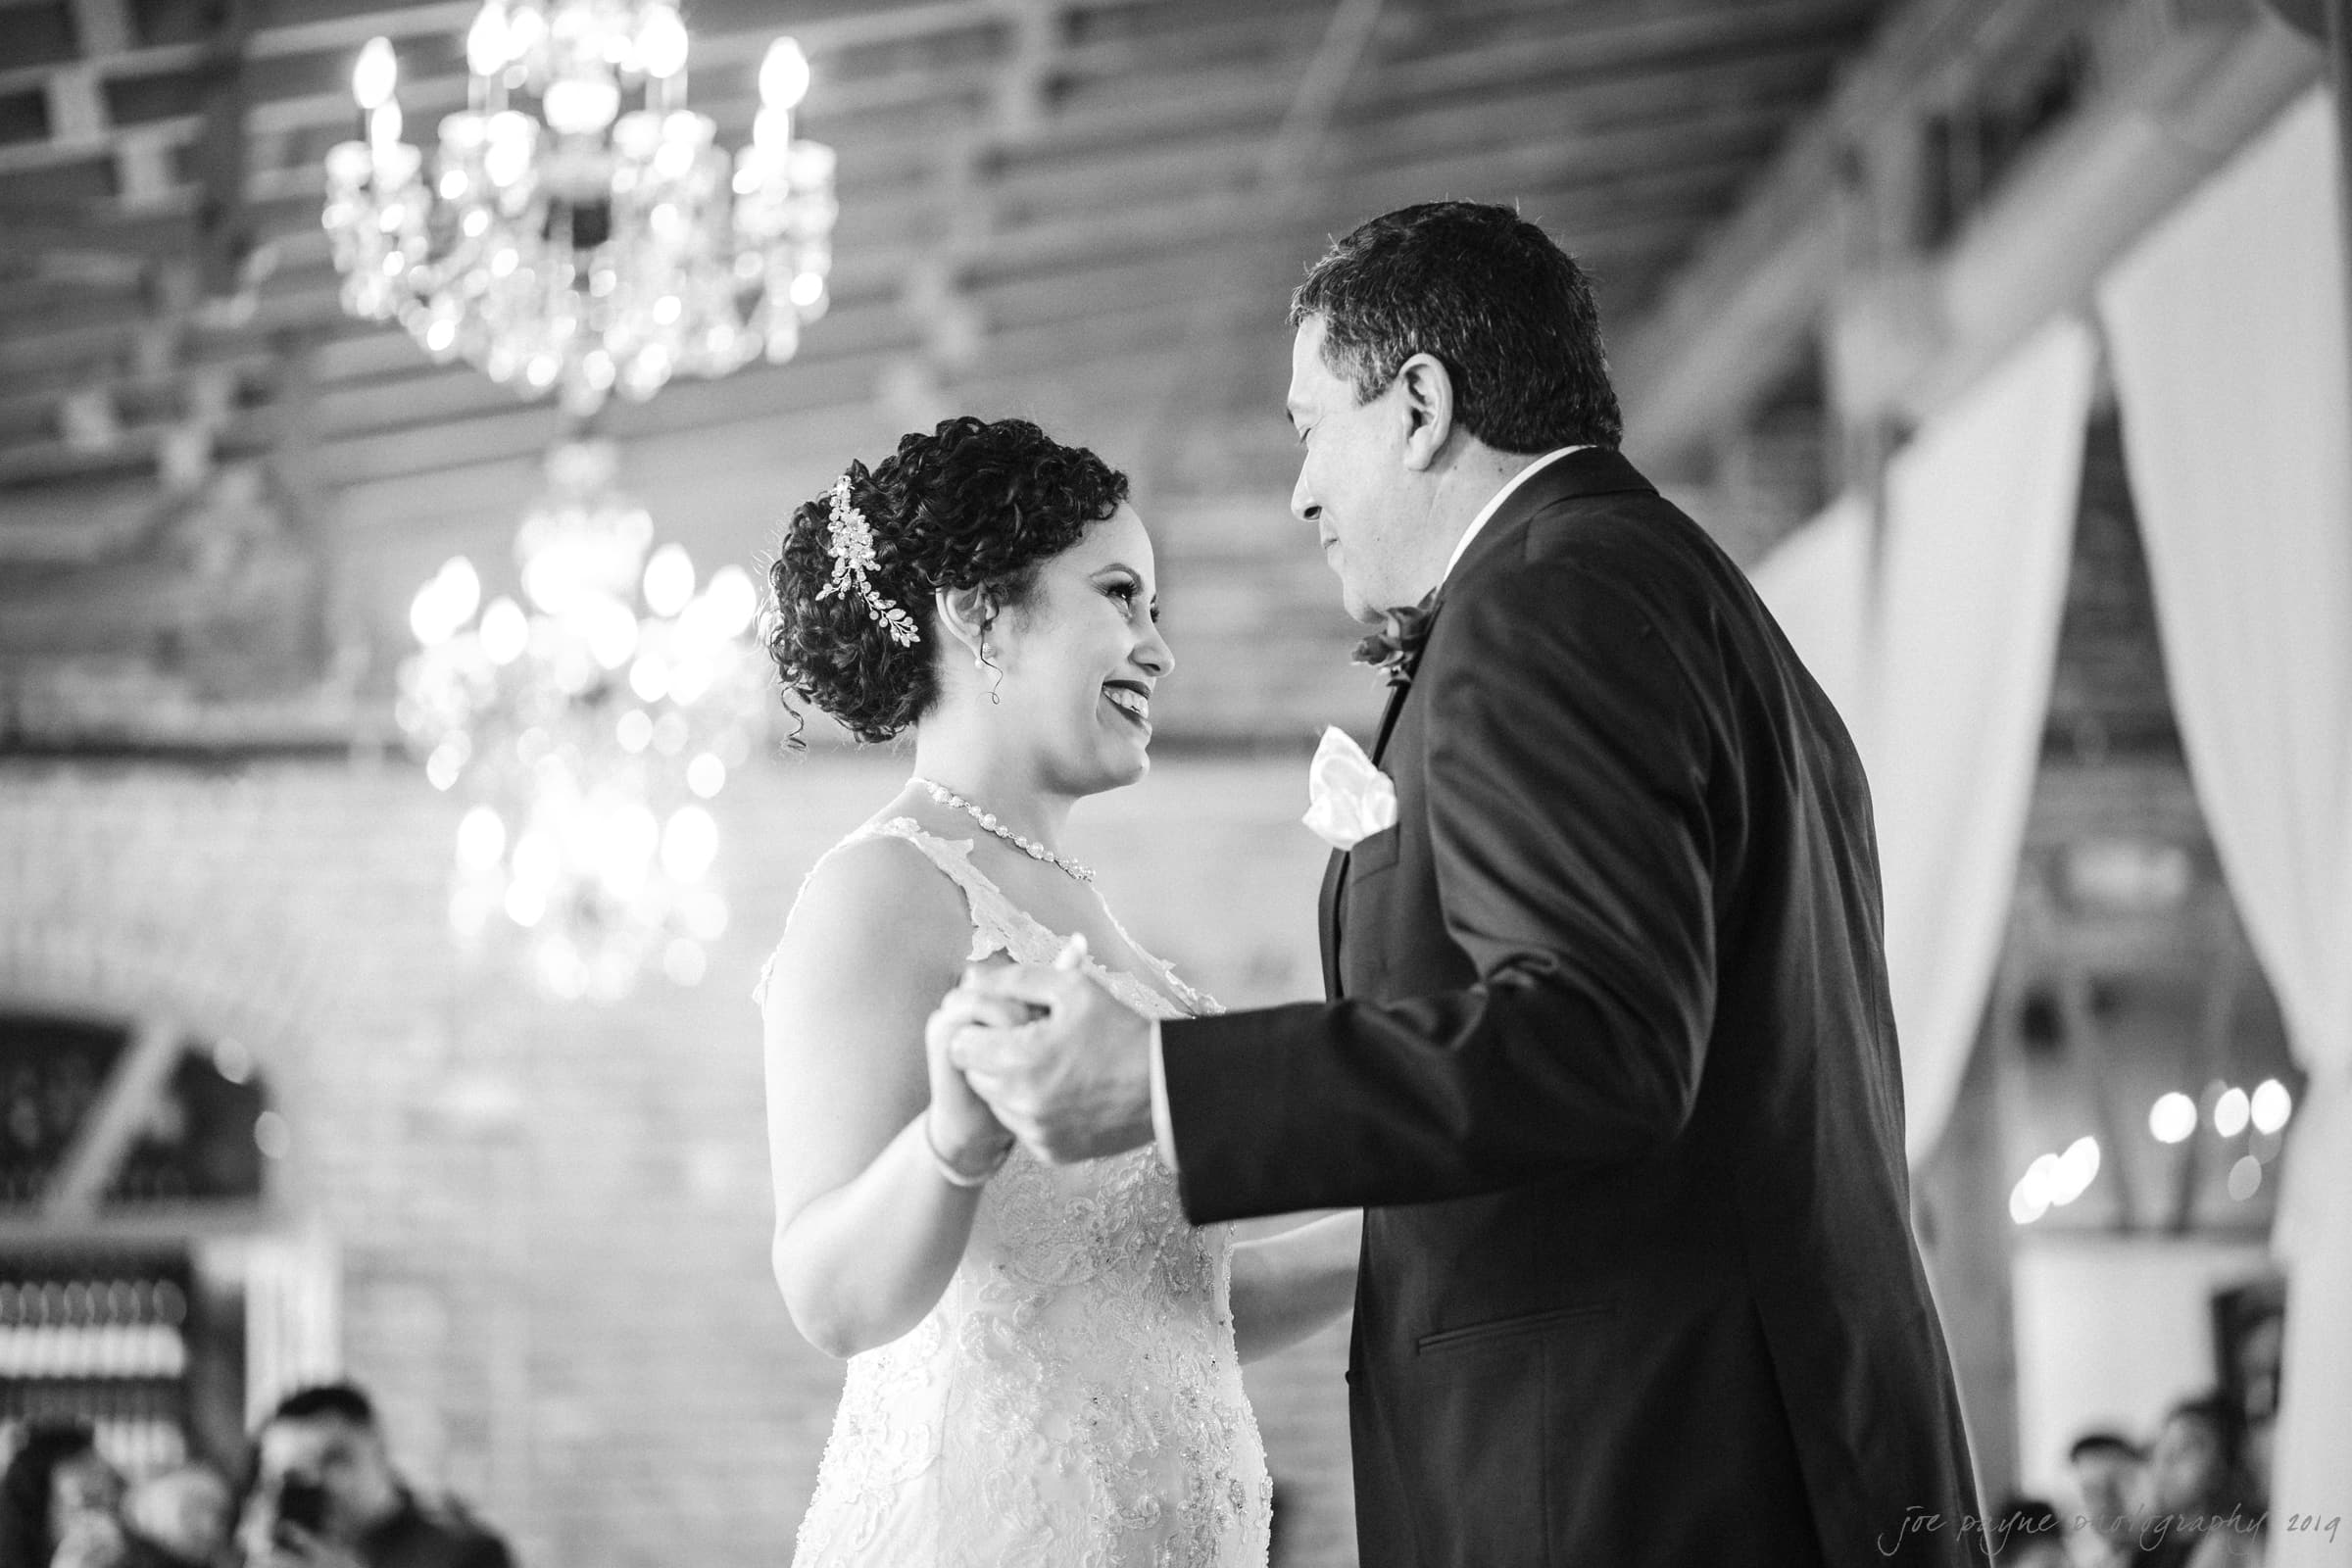 melrose knitting mill raleigh wedding photographer melanie anthony 49